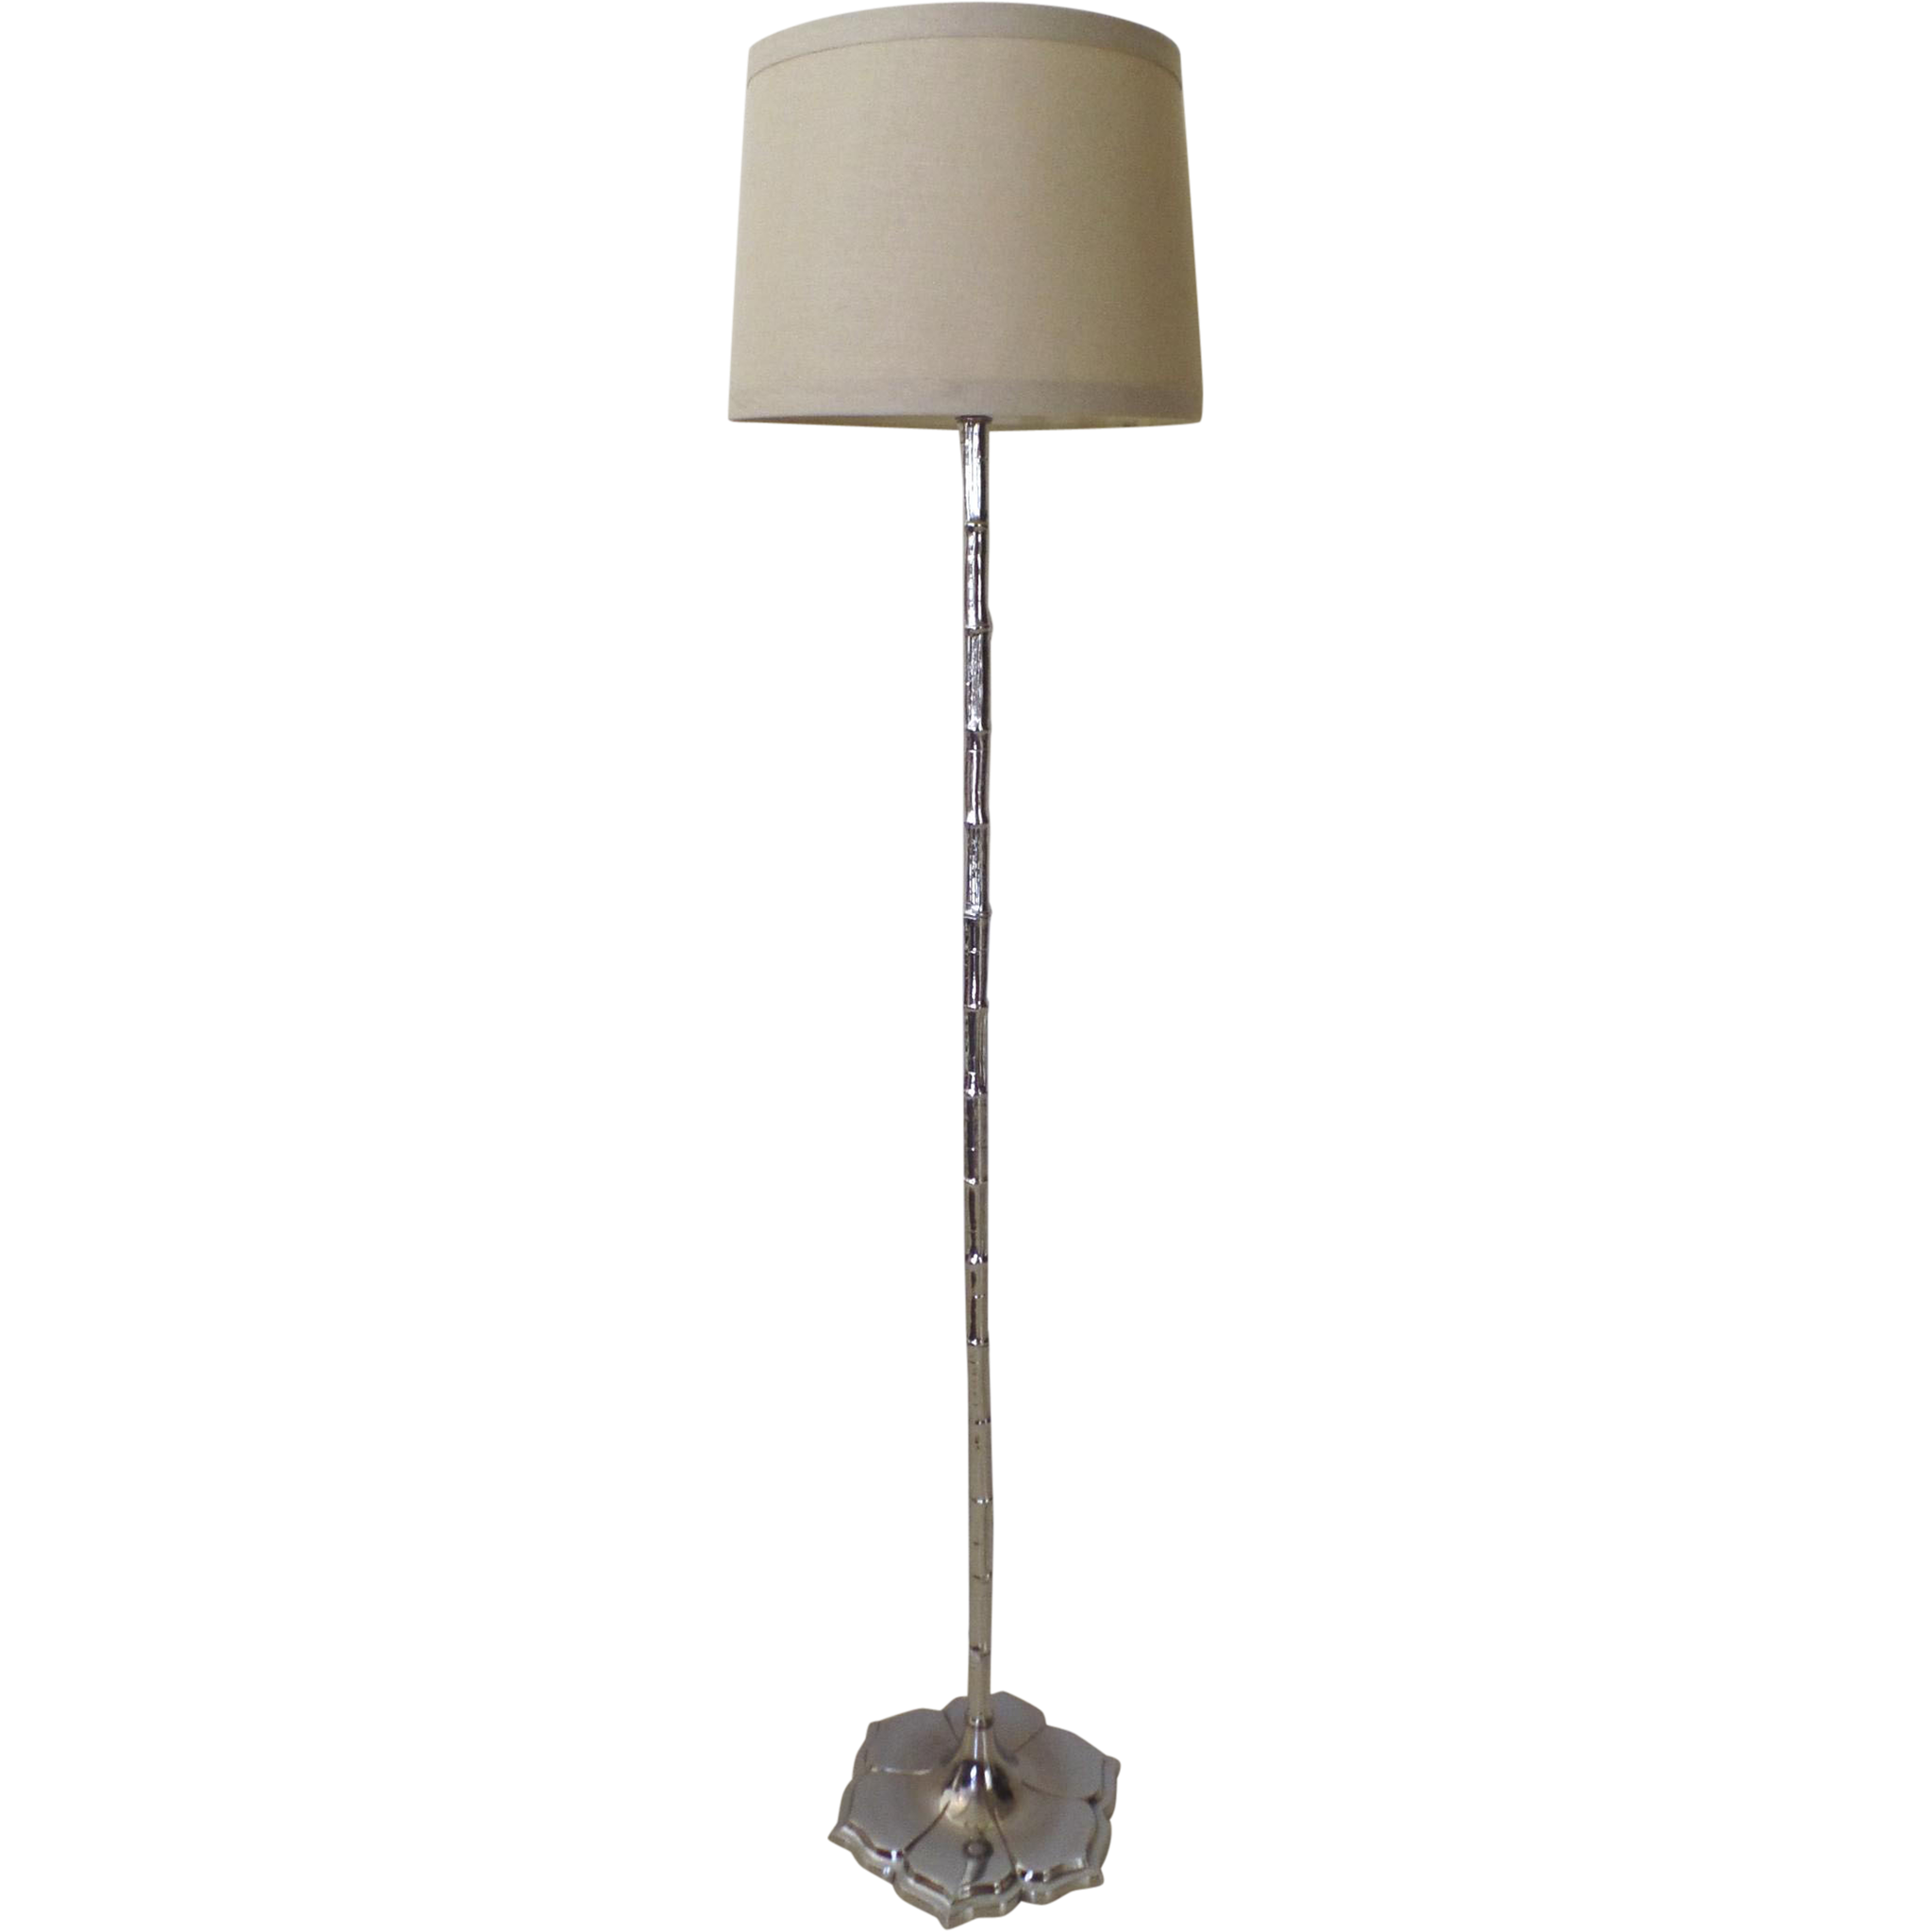 Vintage Chrome Lotus Bamboo Floor Lamp from blacktulip on Ruby Lane